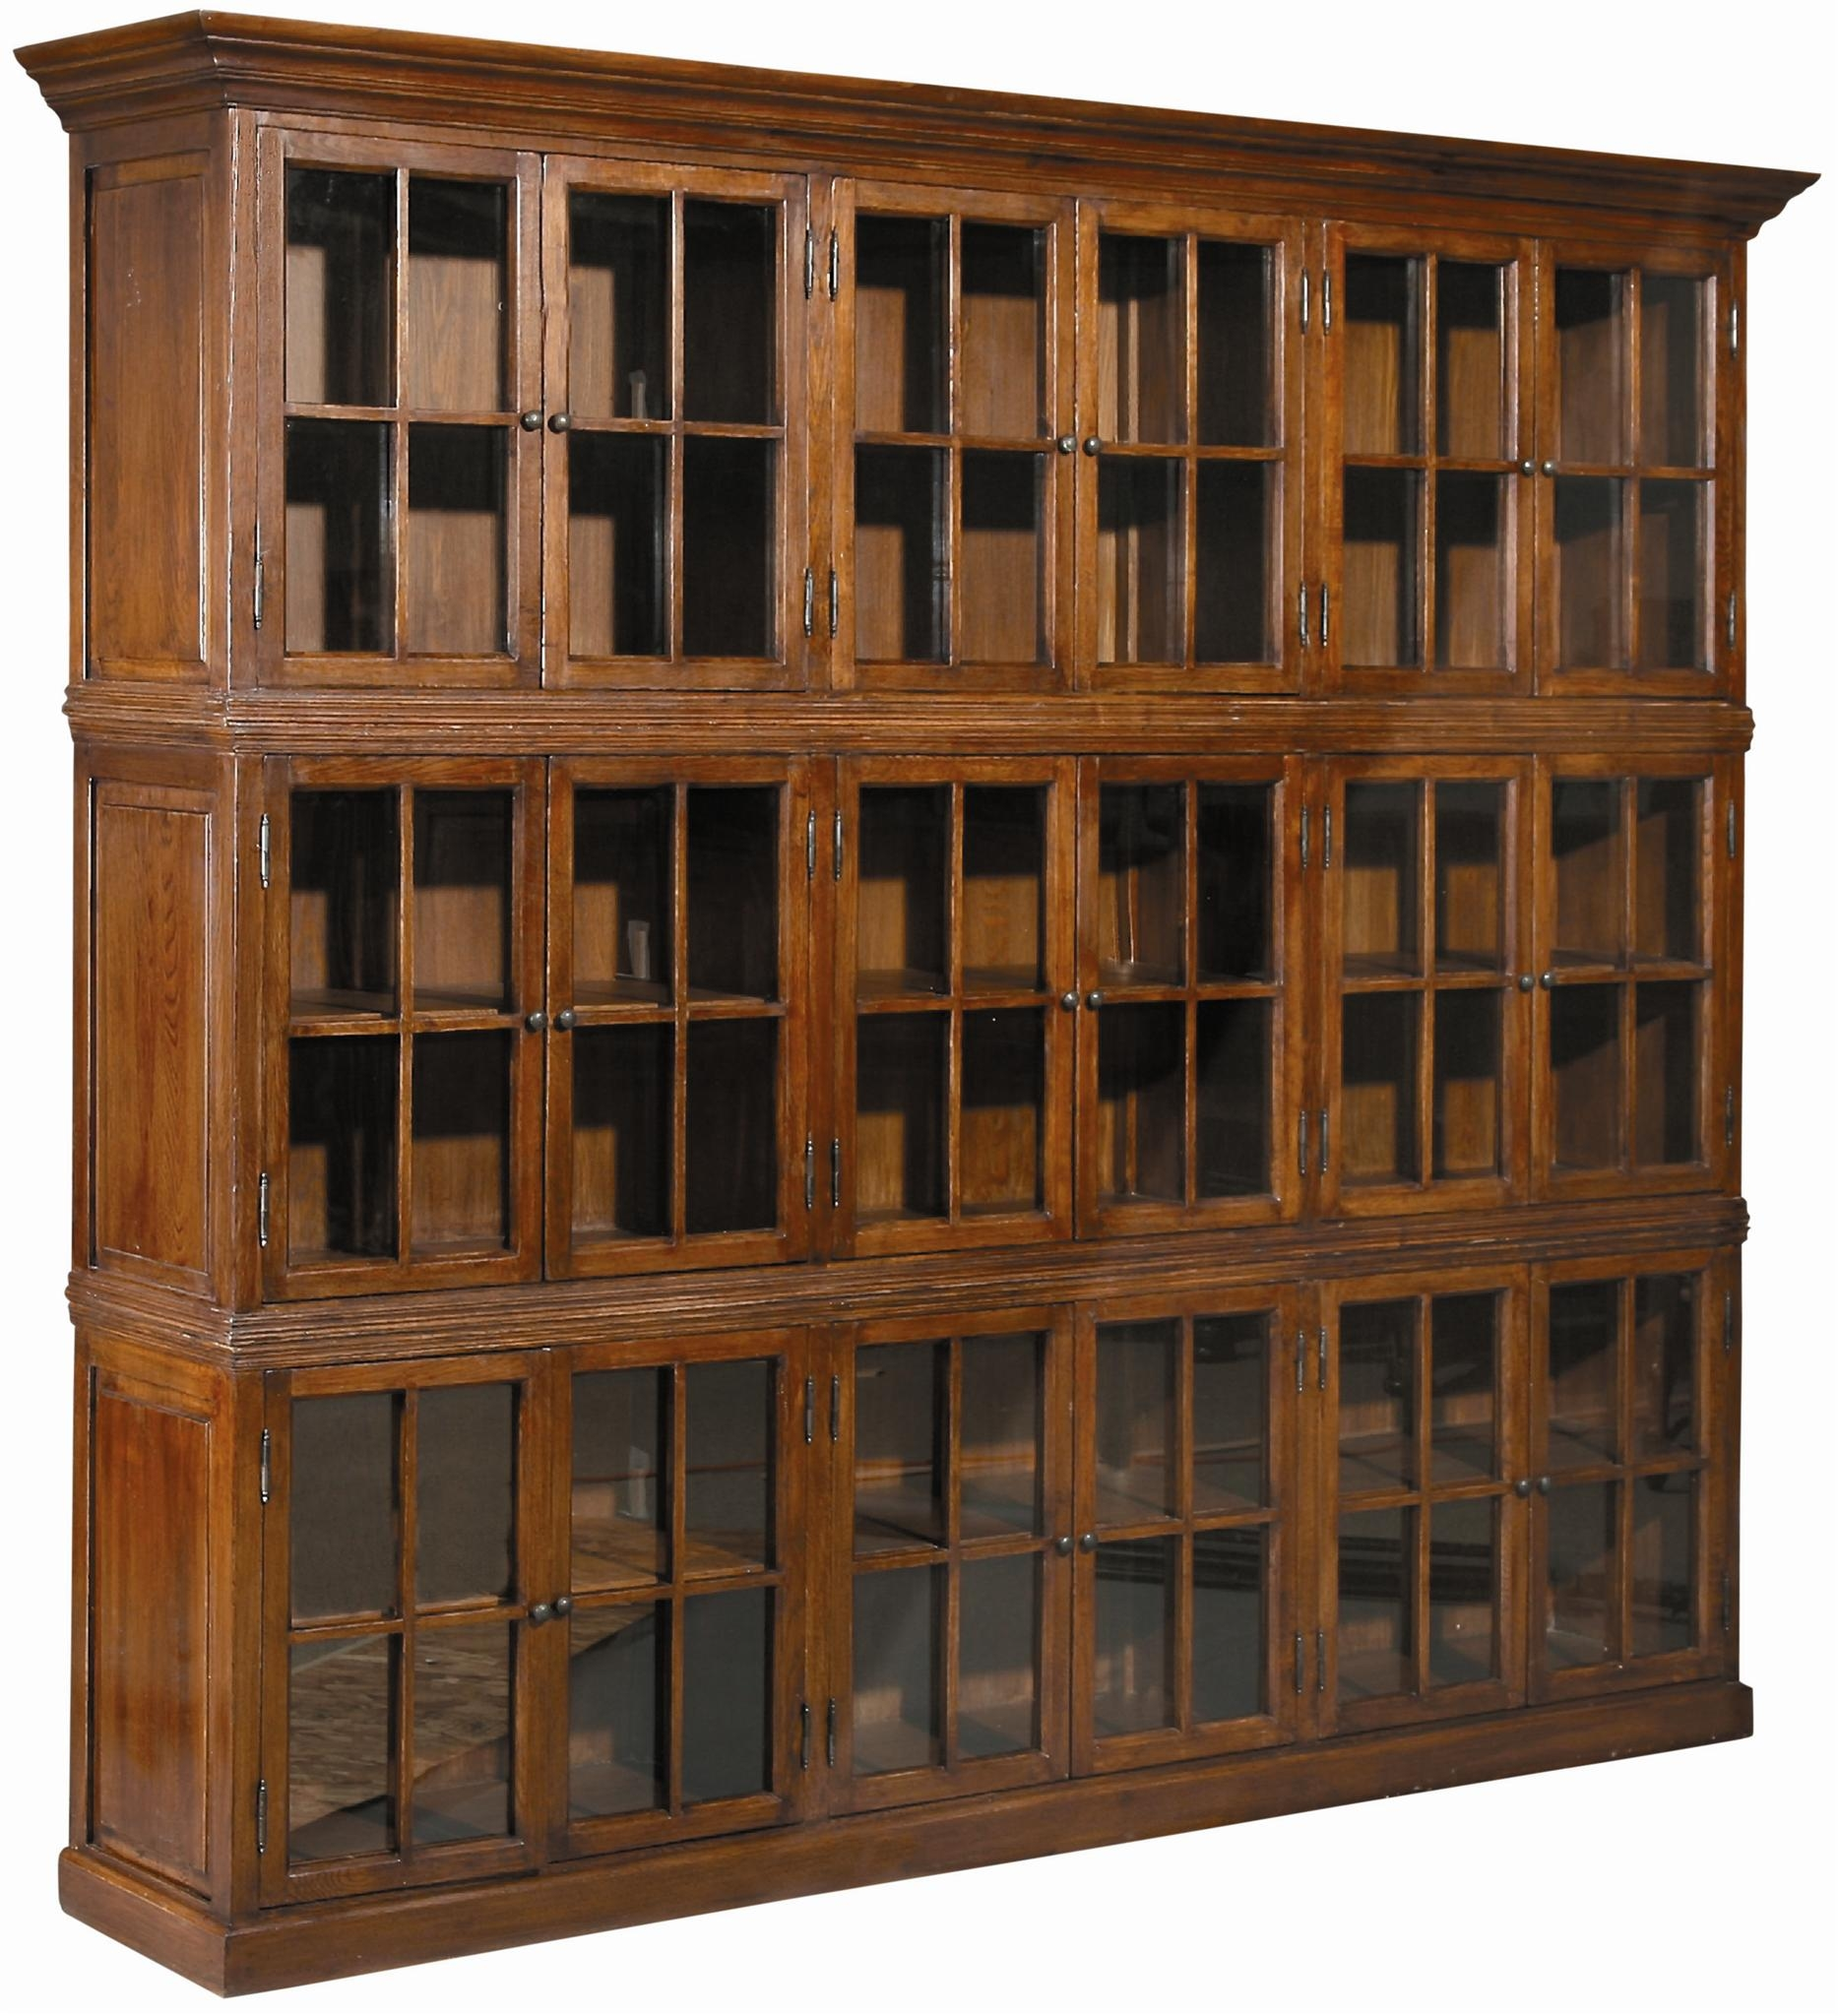 Furniture Mesmerezing Bookcases With Glass Doors Give A Stunning Pertaining To Large Wooden Bookcases (View 6 of 15)